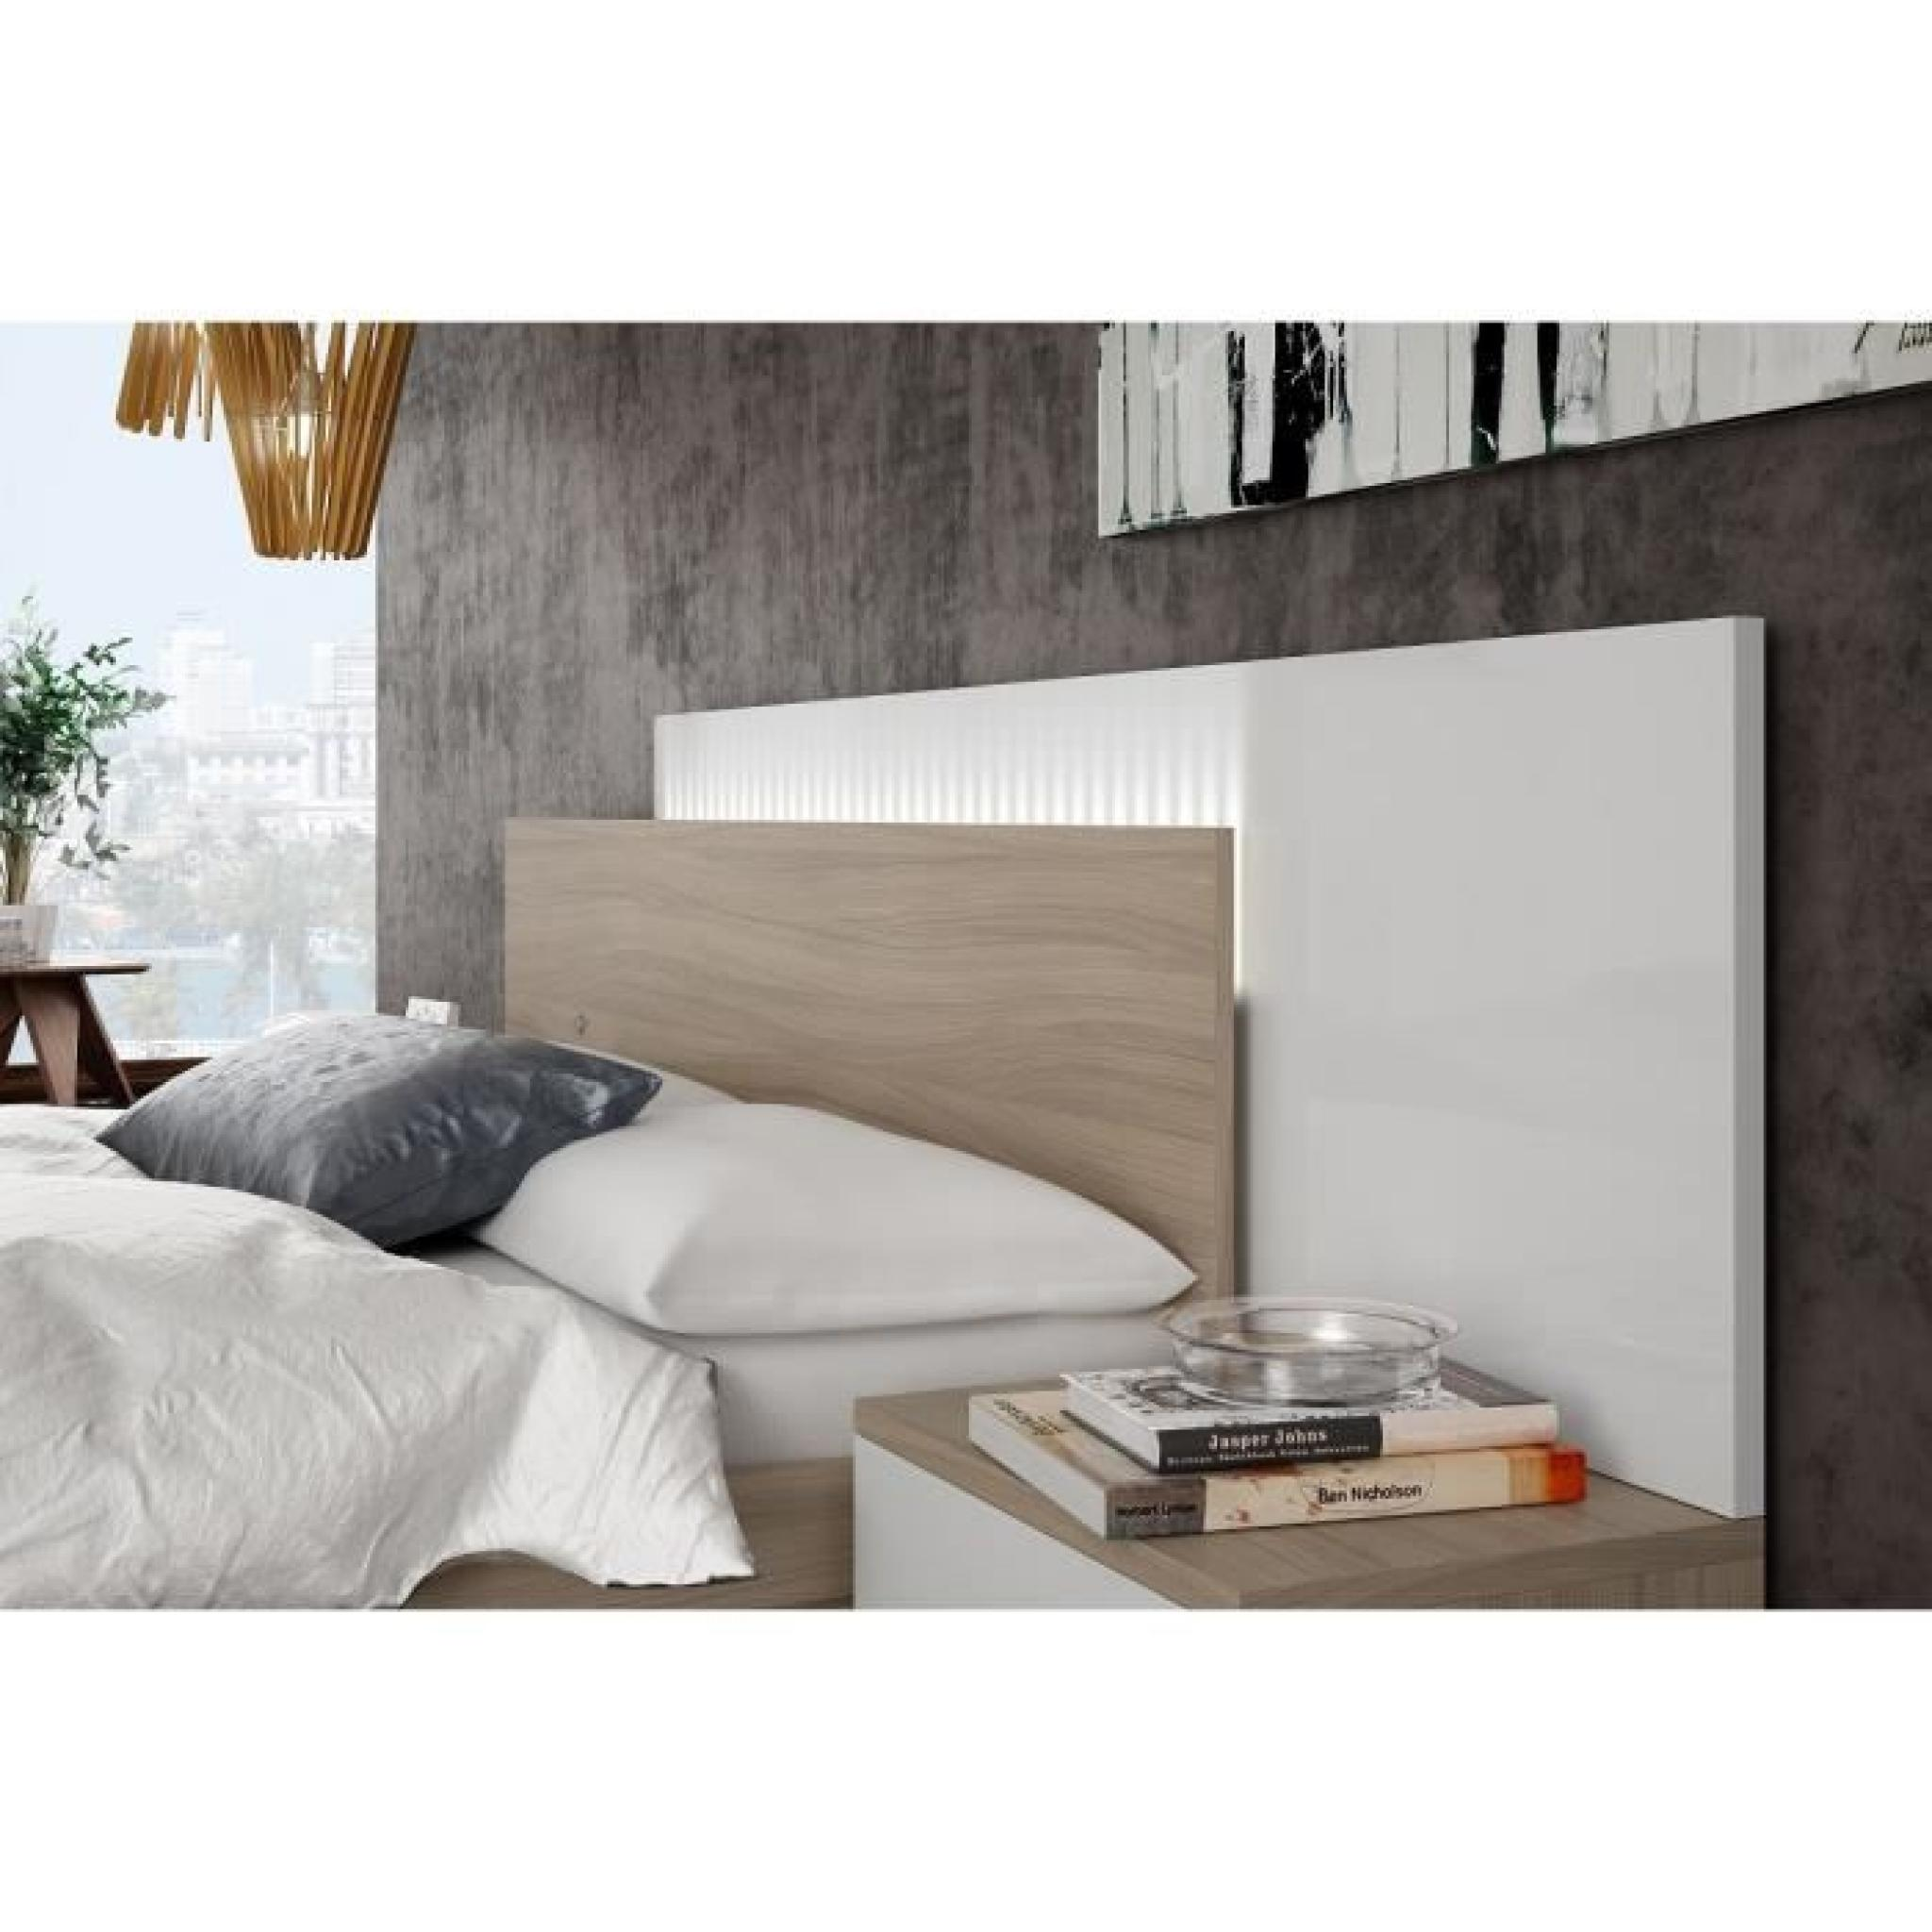 tete de lit pas cher en bois. Black Bedroom Furniture Sets. Home Design Ideas